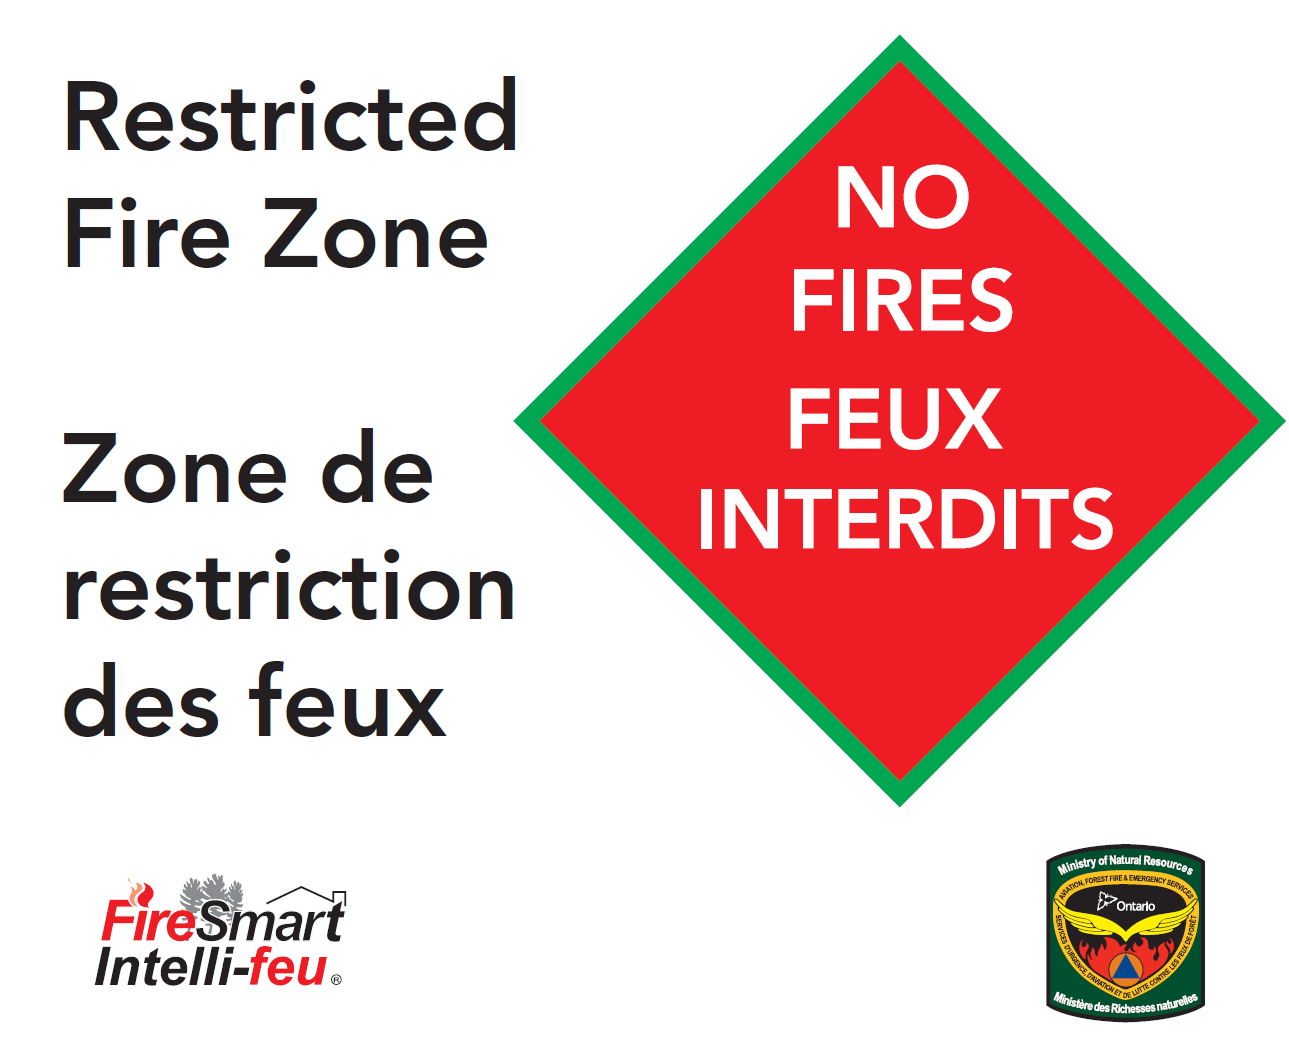 Green and orange Restricted Fire Zone sign